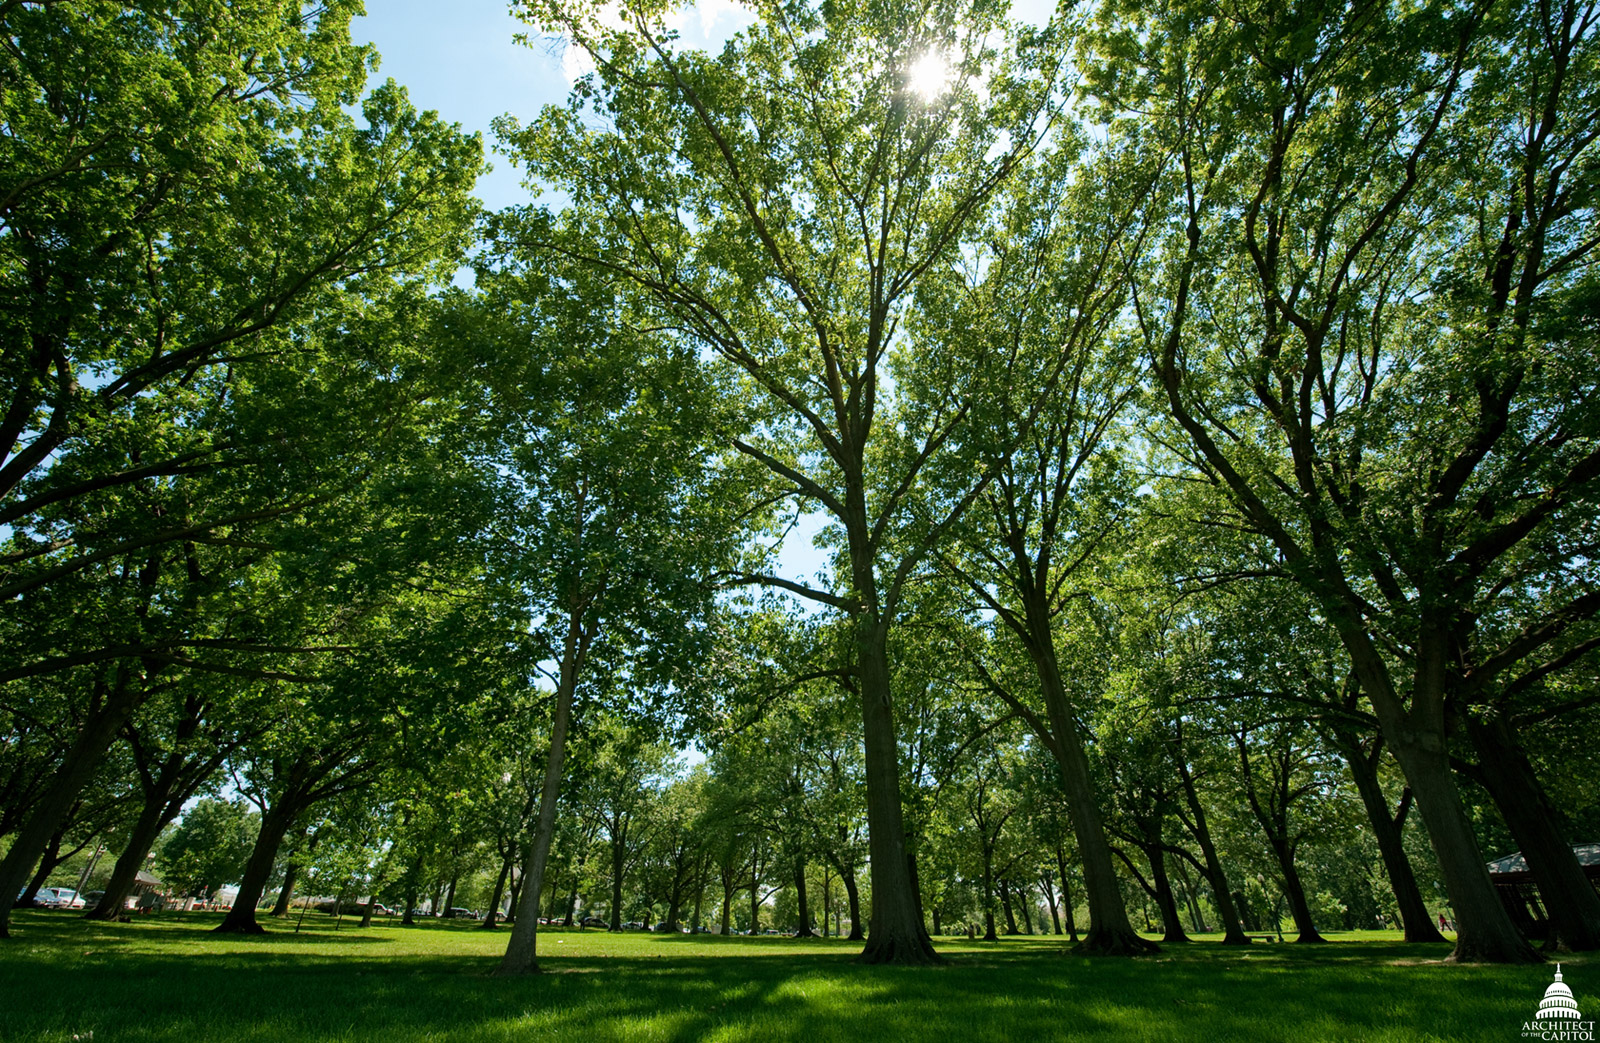 On the 274-acre U.S. Capitol Grounds, there are more than 4,300 trees cared for by the Capitol Grounds team.